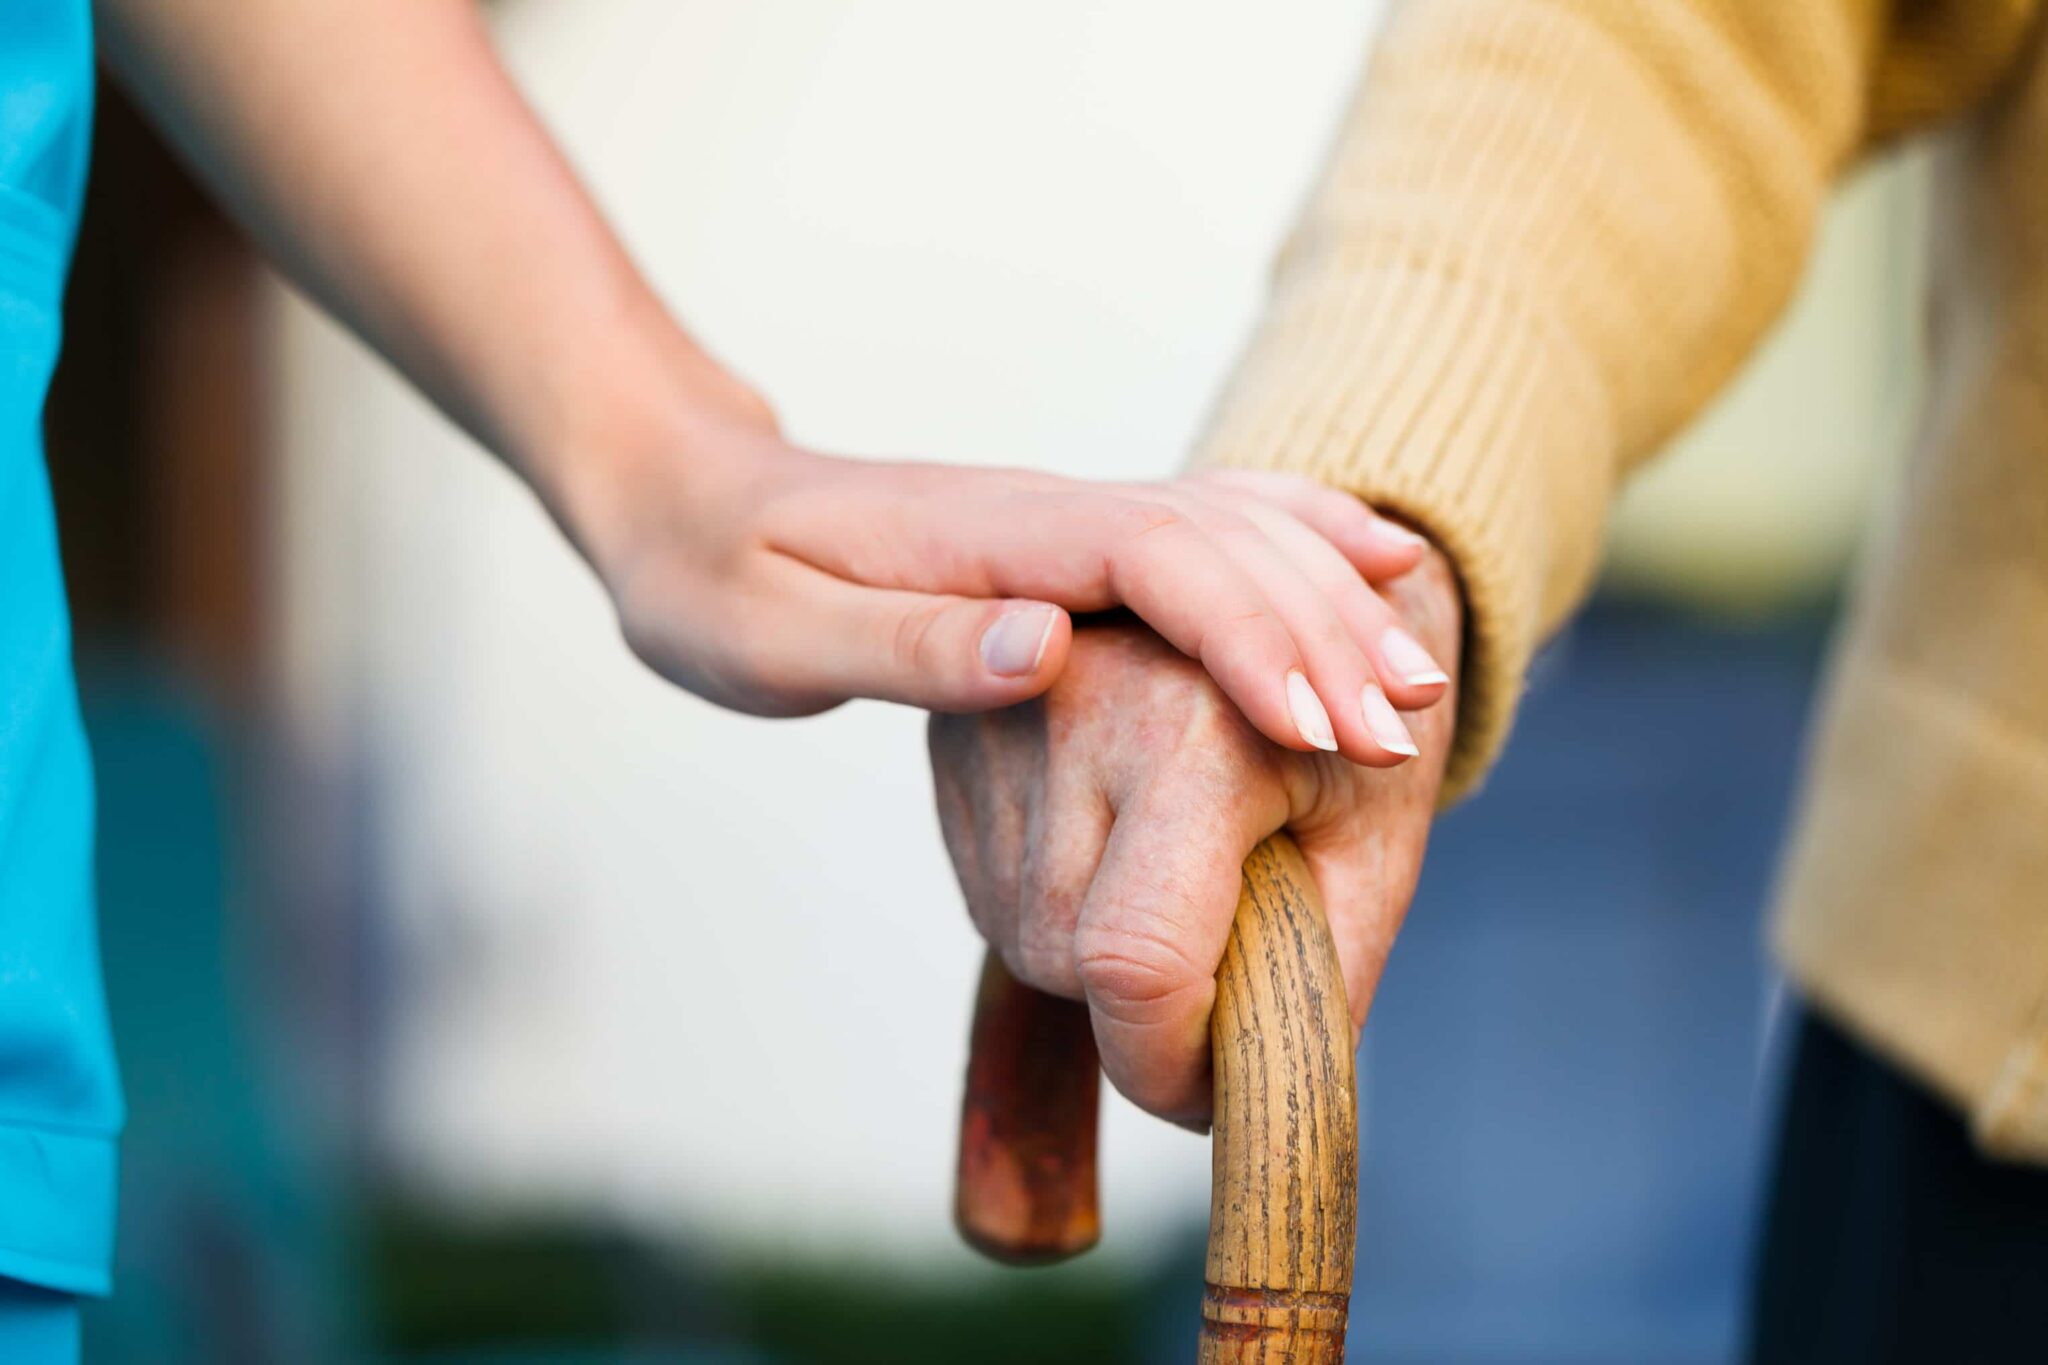 Young person's hand supporting the hand of an older person holding a cane